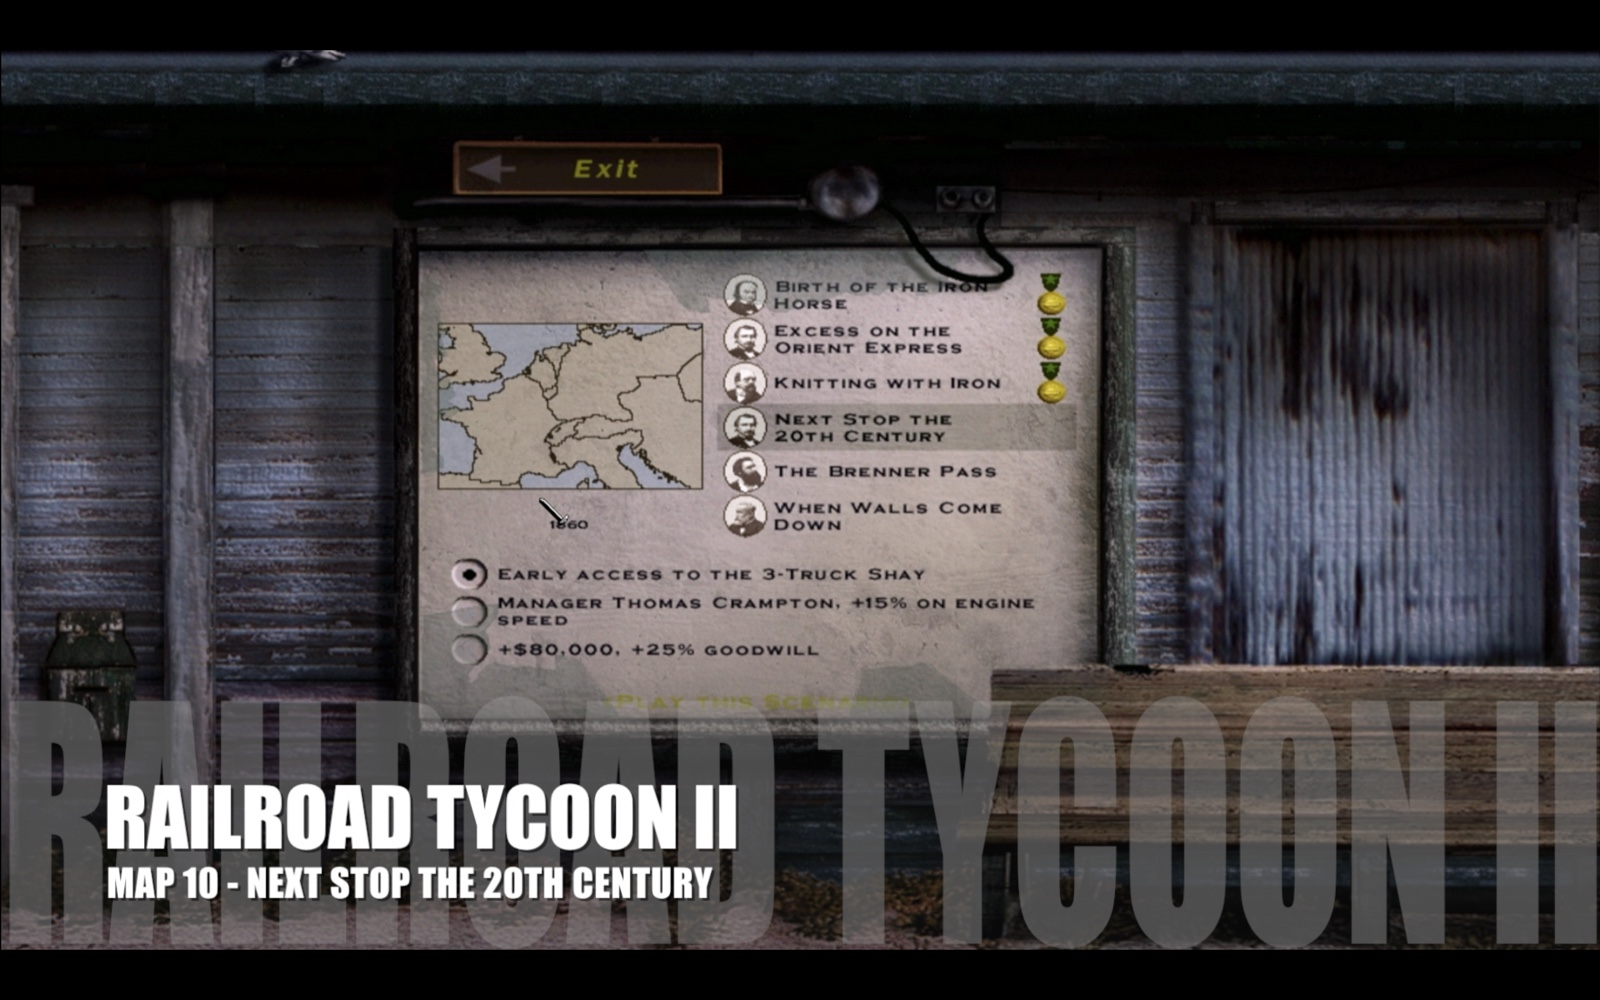 Railroad Tycoon II – Map 10 – Next Stop the 20th Century